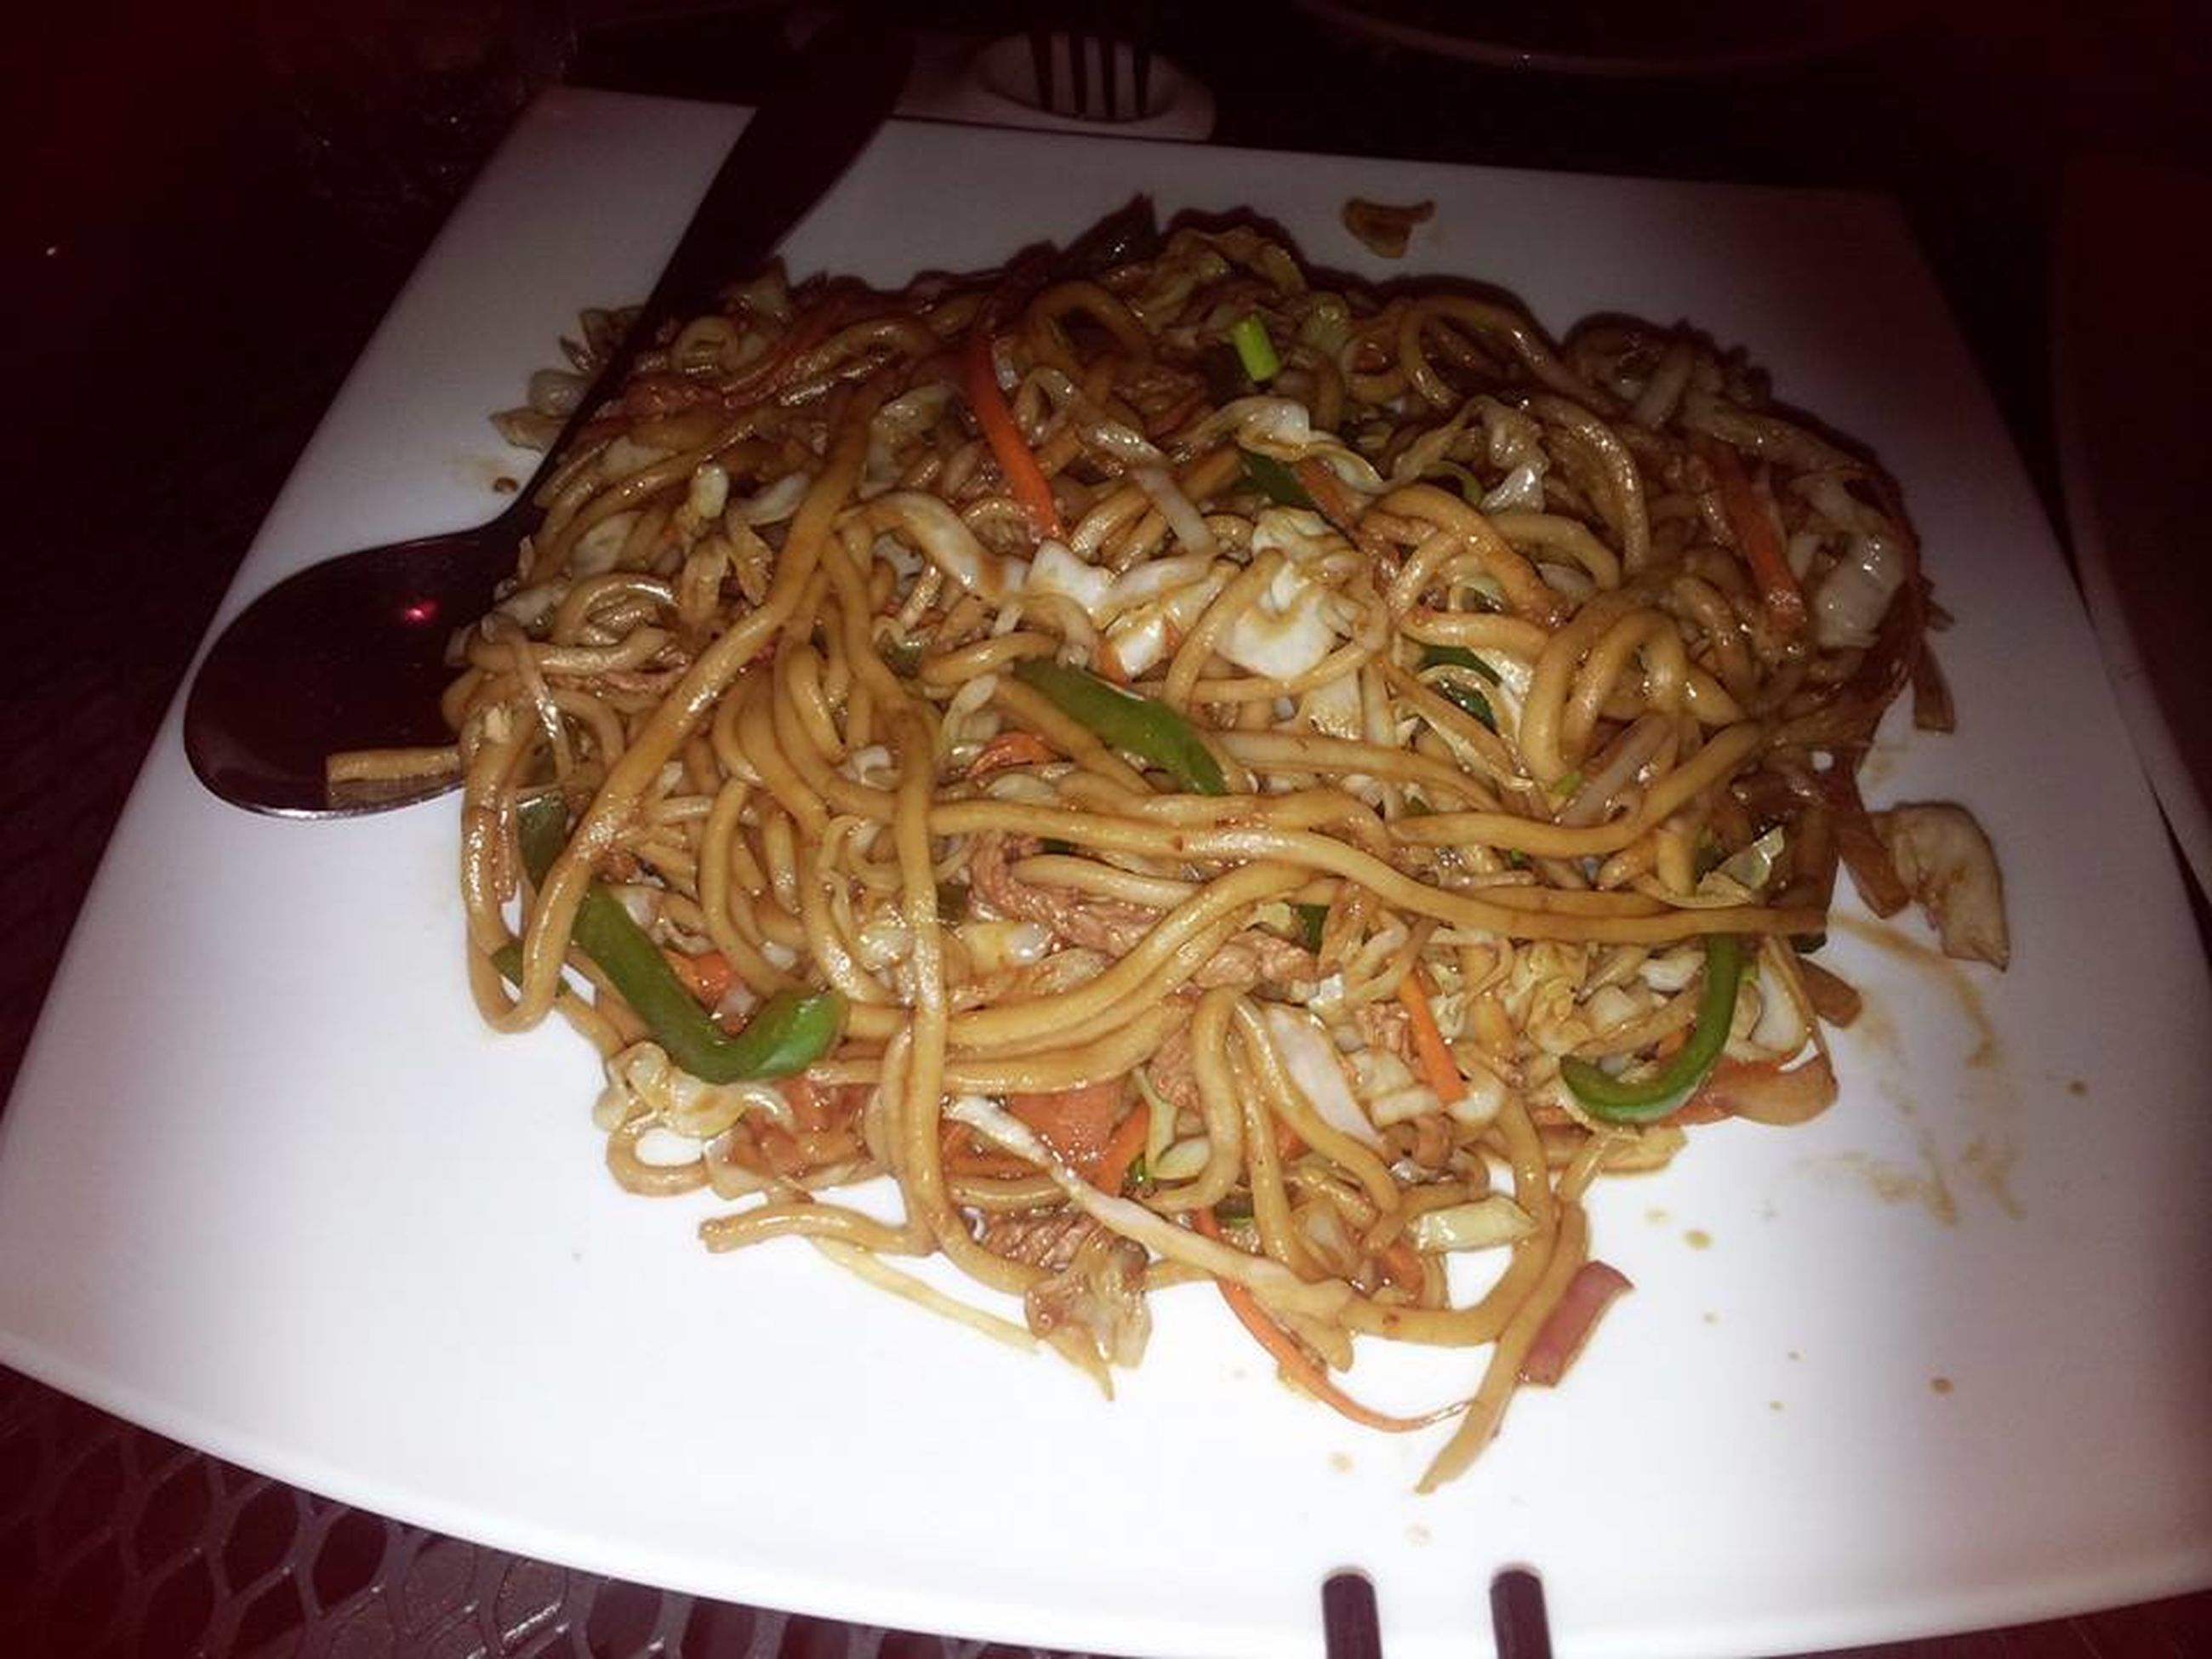 food and drink, food, ready-to-eat, indoors, close-up, noodles, indulgence, serving size, freshness, plate, meal, appetizer, cooked, noodle, spaghetti, temptation, culture, take out food, serving dish, vegetarian food